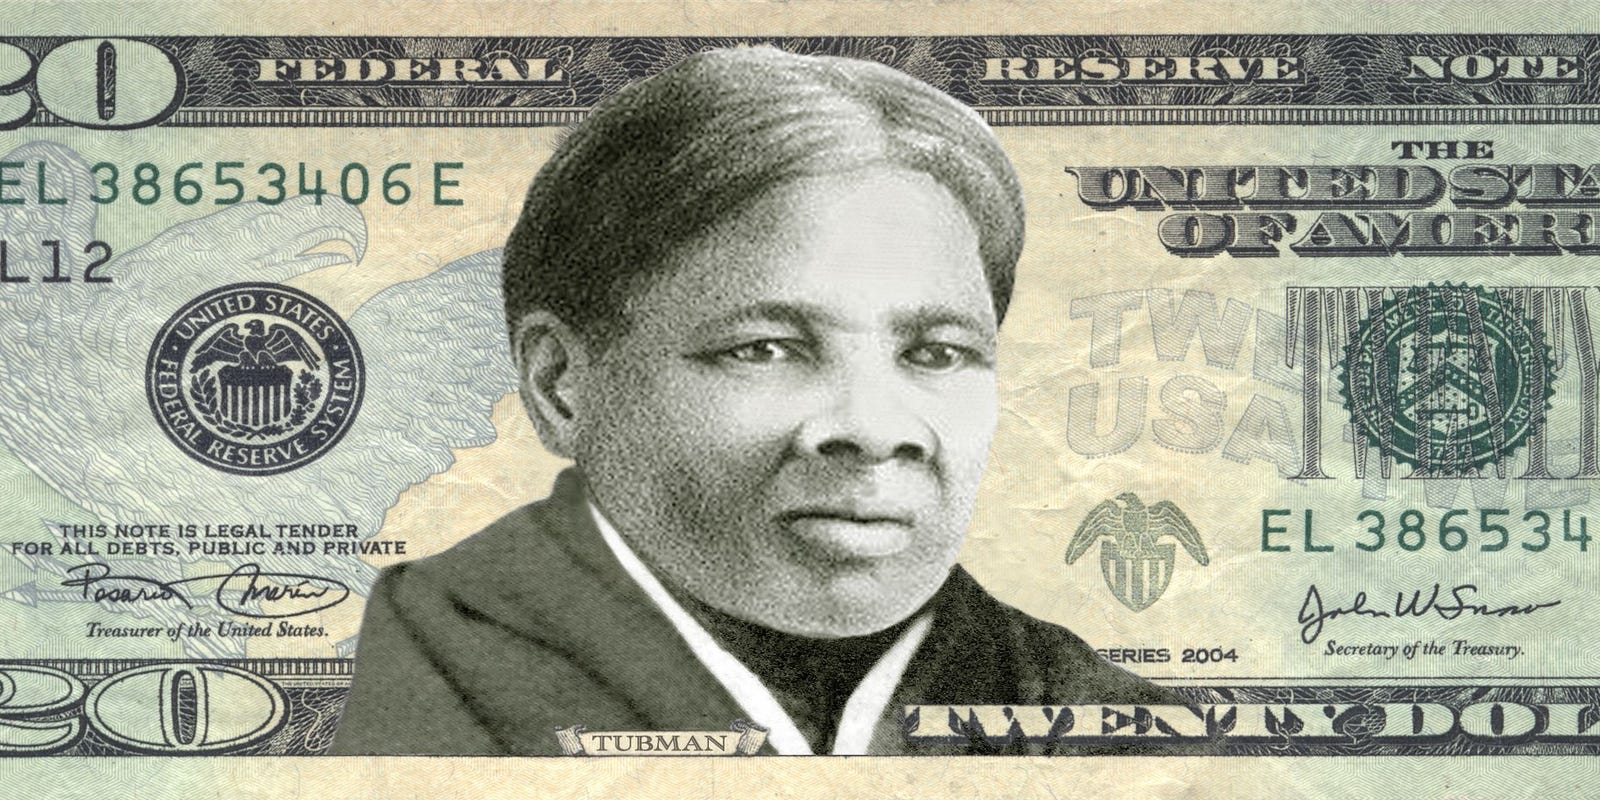 Harriet Tubman 20 Bill Won T Be Out Until 2028 Steve Mnuchin Says